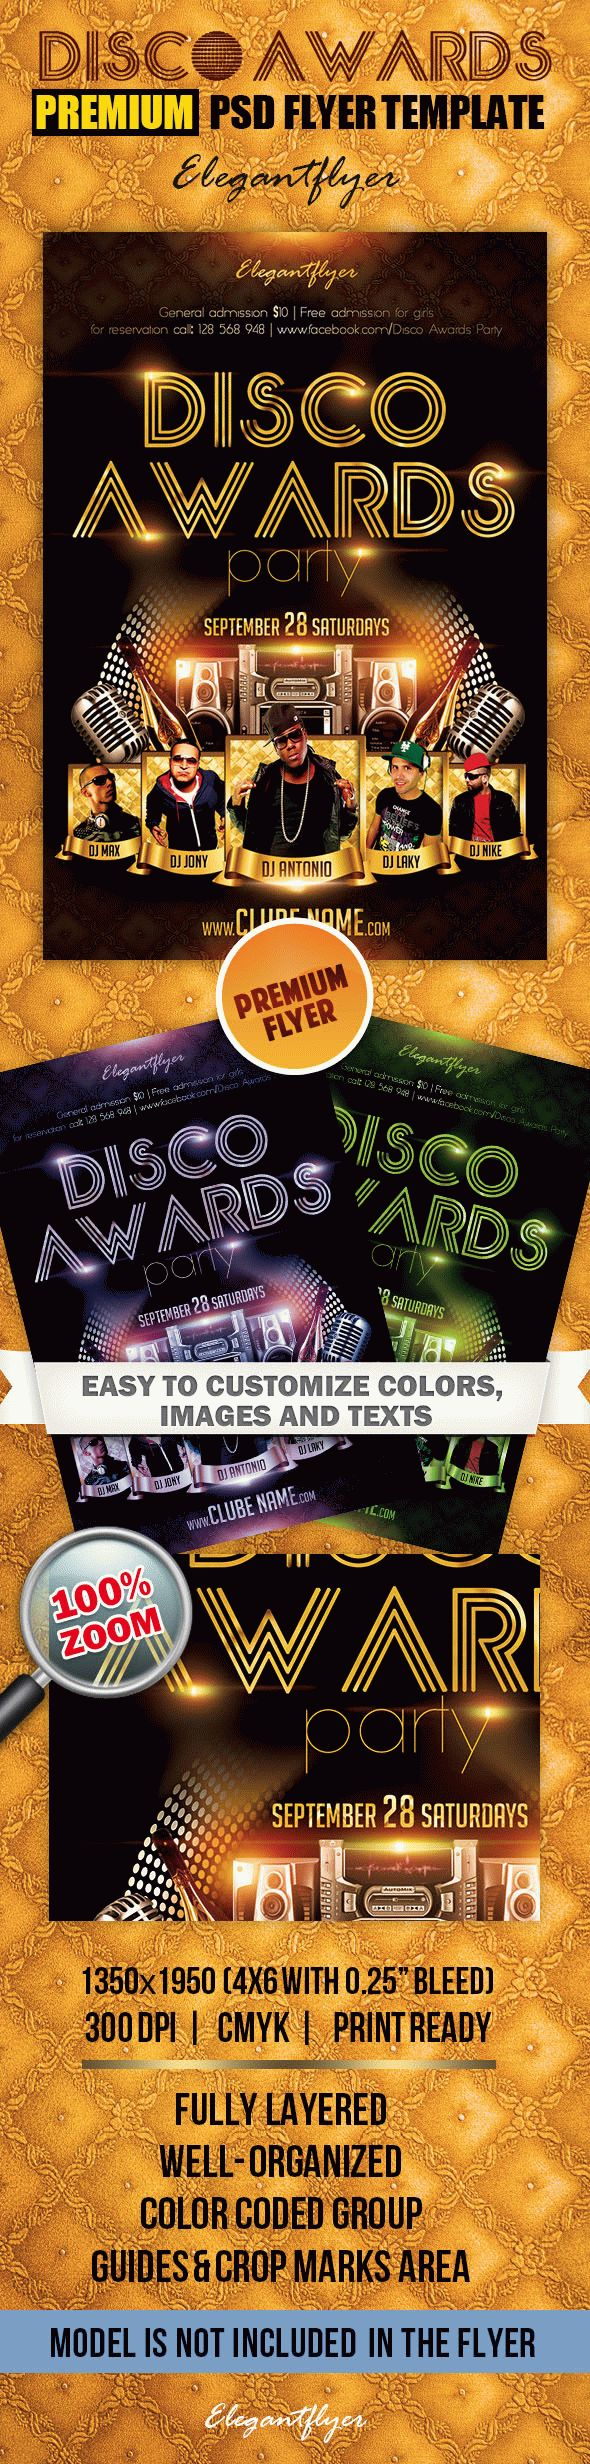 Disco Awards Party – Premium Club flyer PSD Template